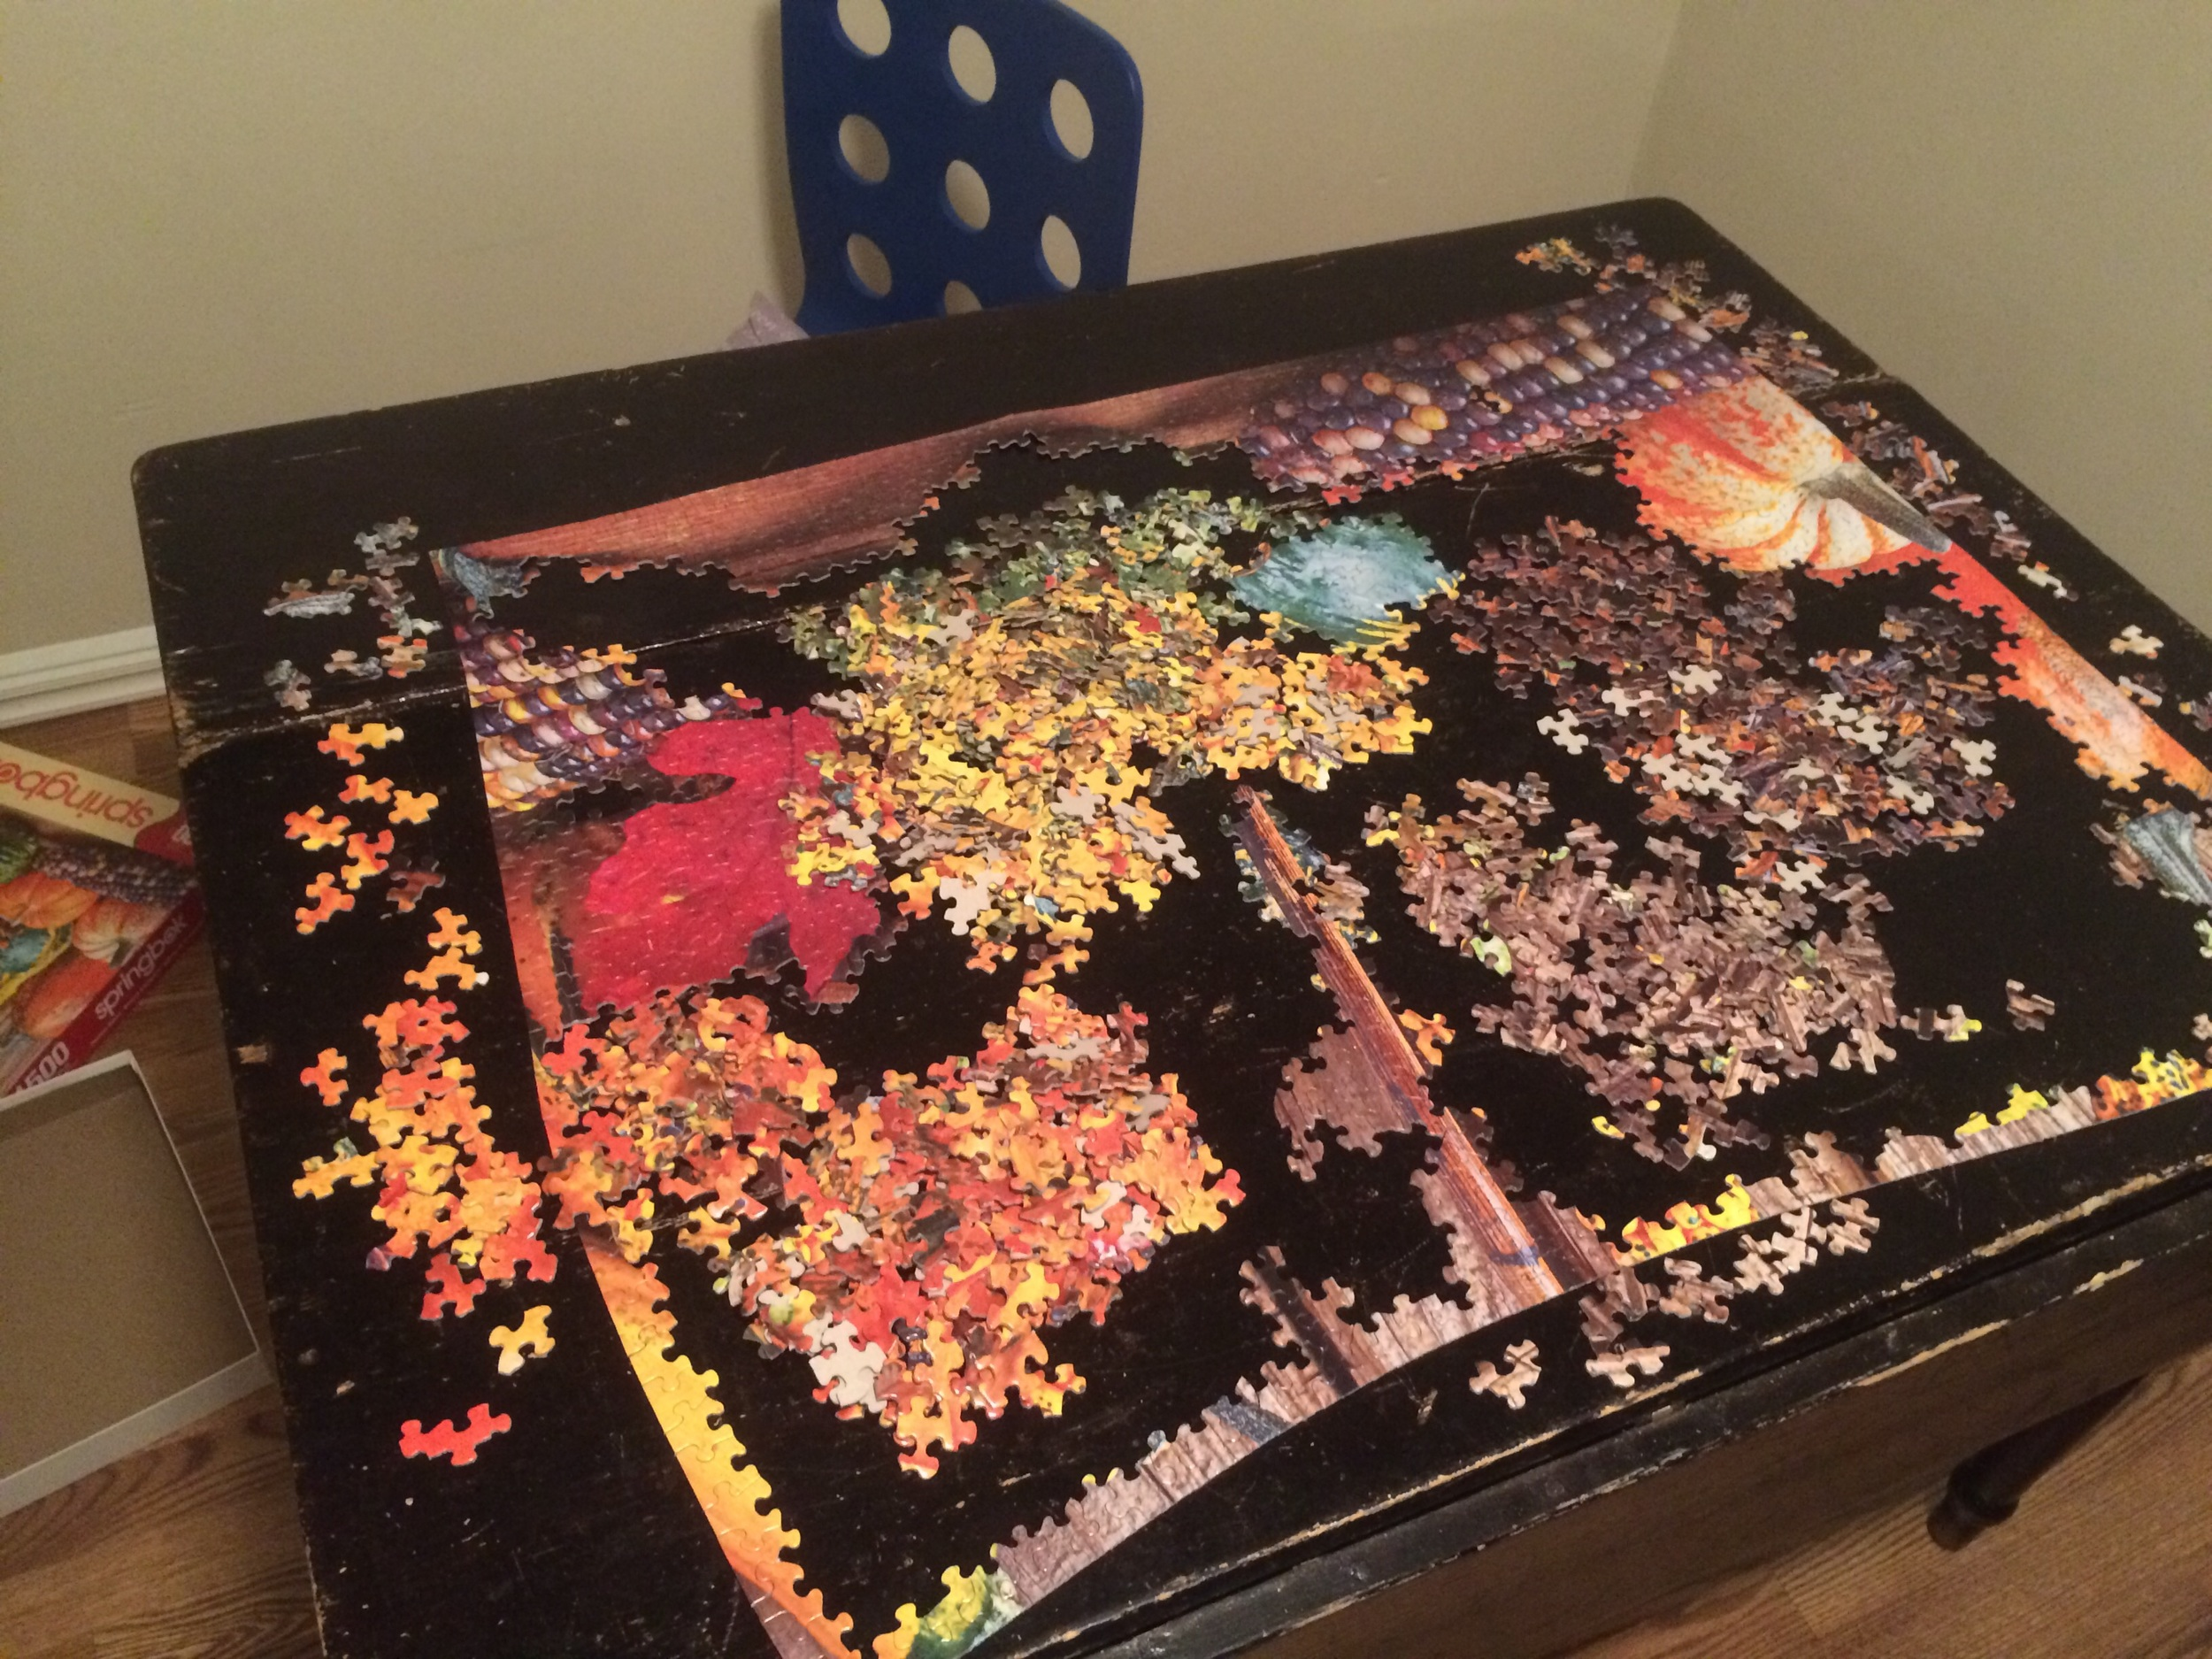 My Thanksgiving puzzle that I've been working on for a long time!